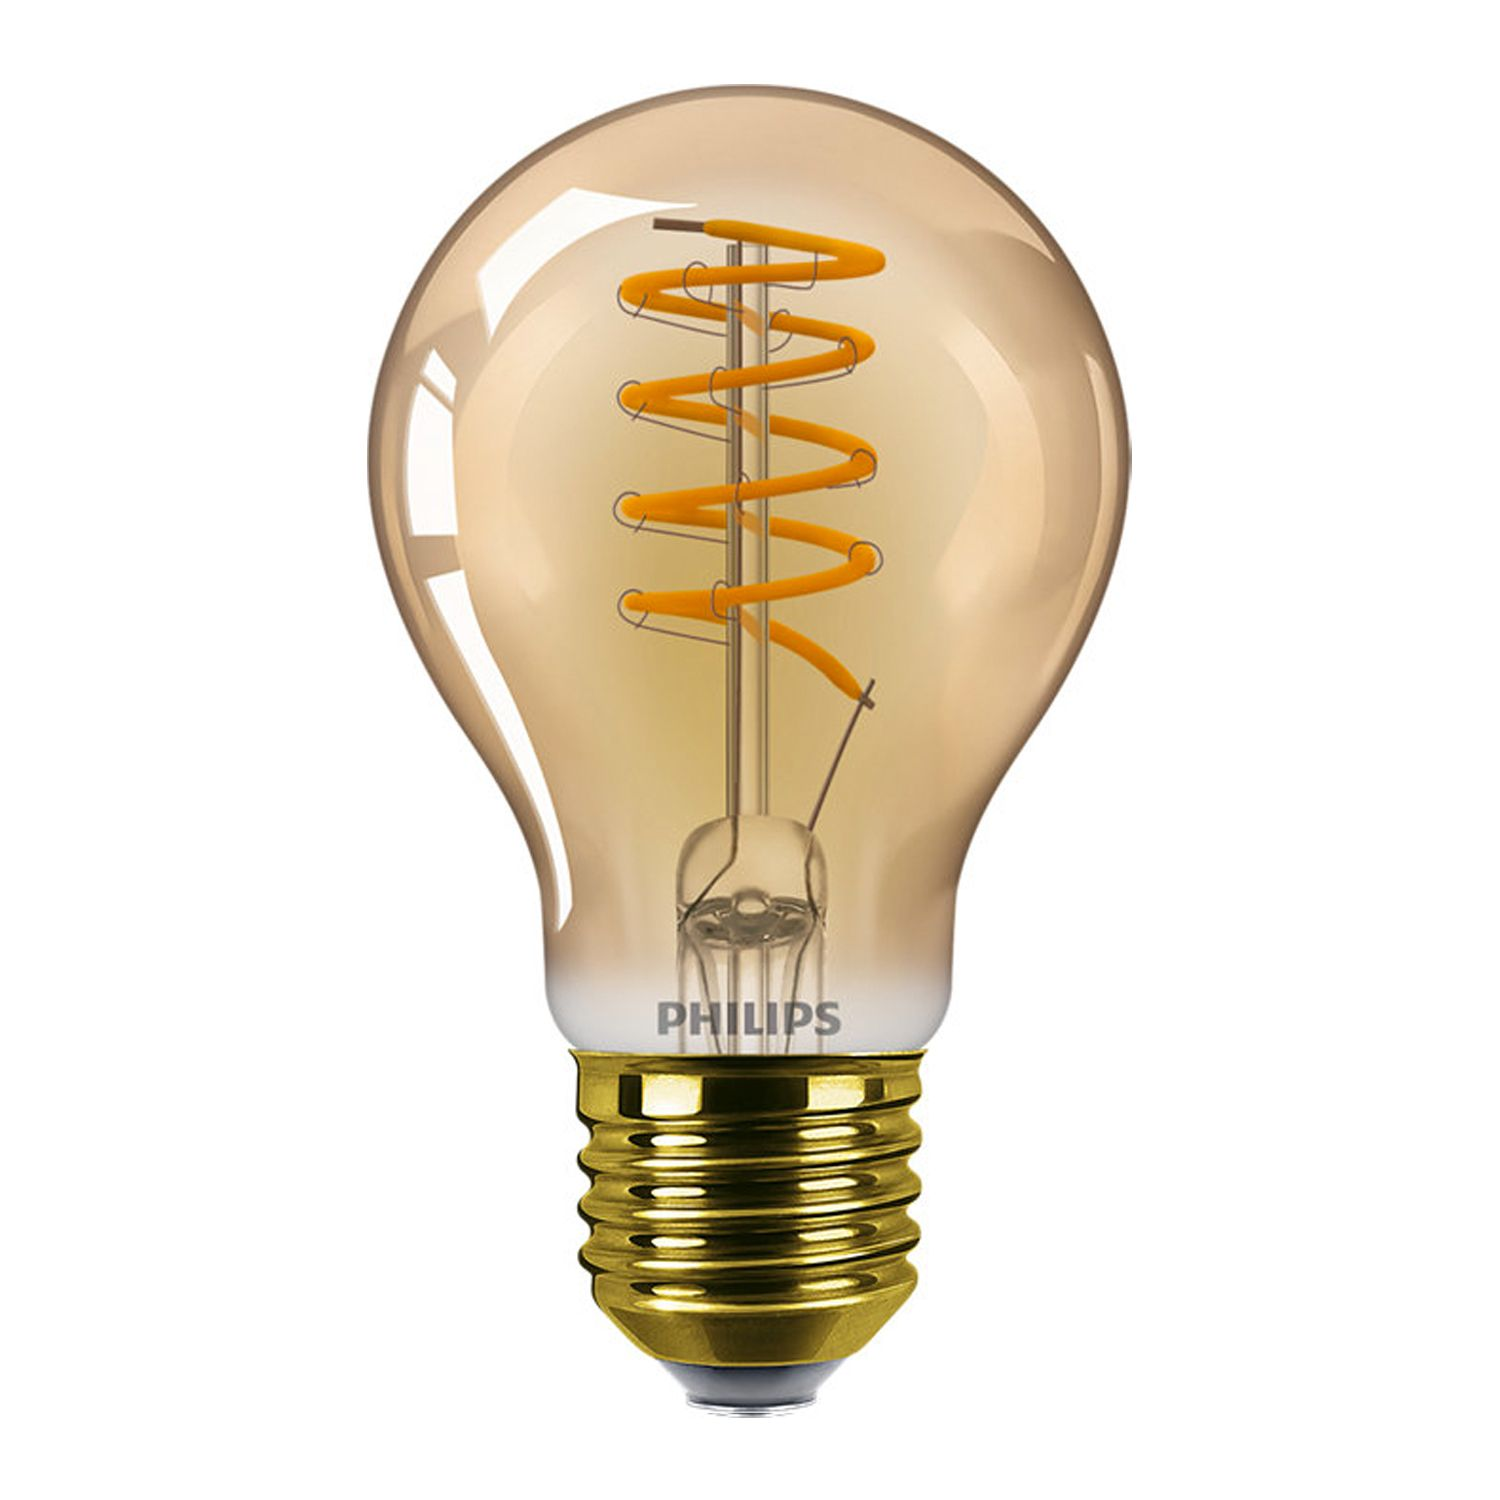 Philips Classic LEDbulb E27 A60 5.5W 820 Gold | Dimmable - Replacer for 25W